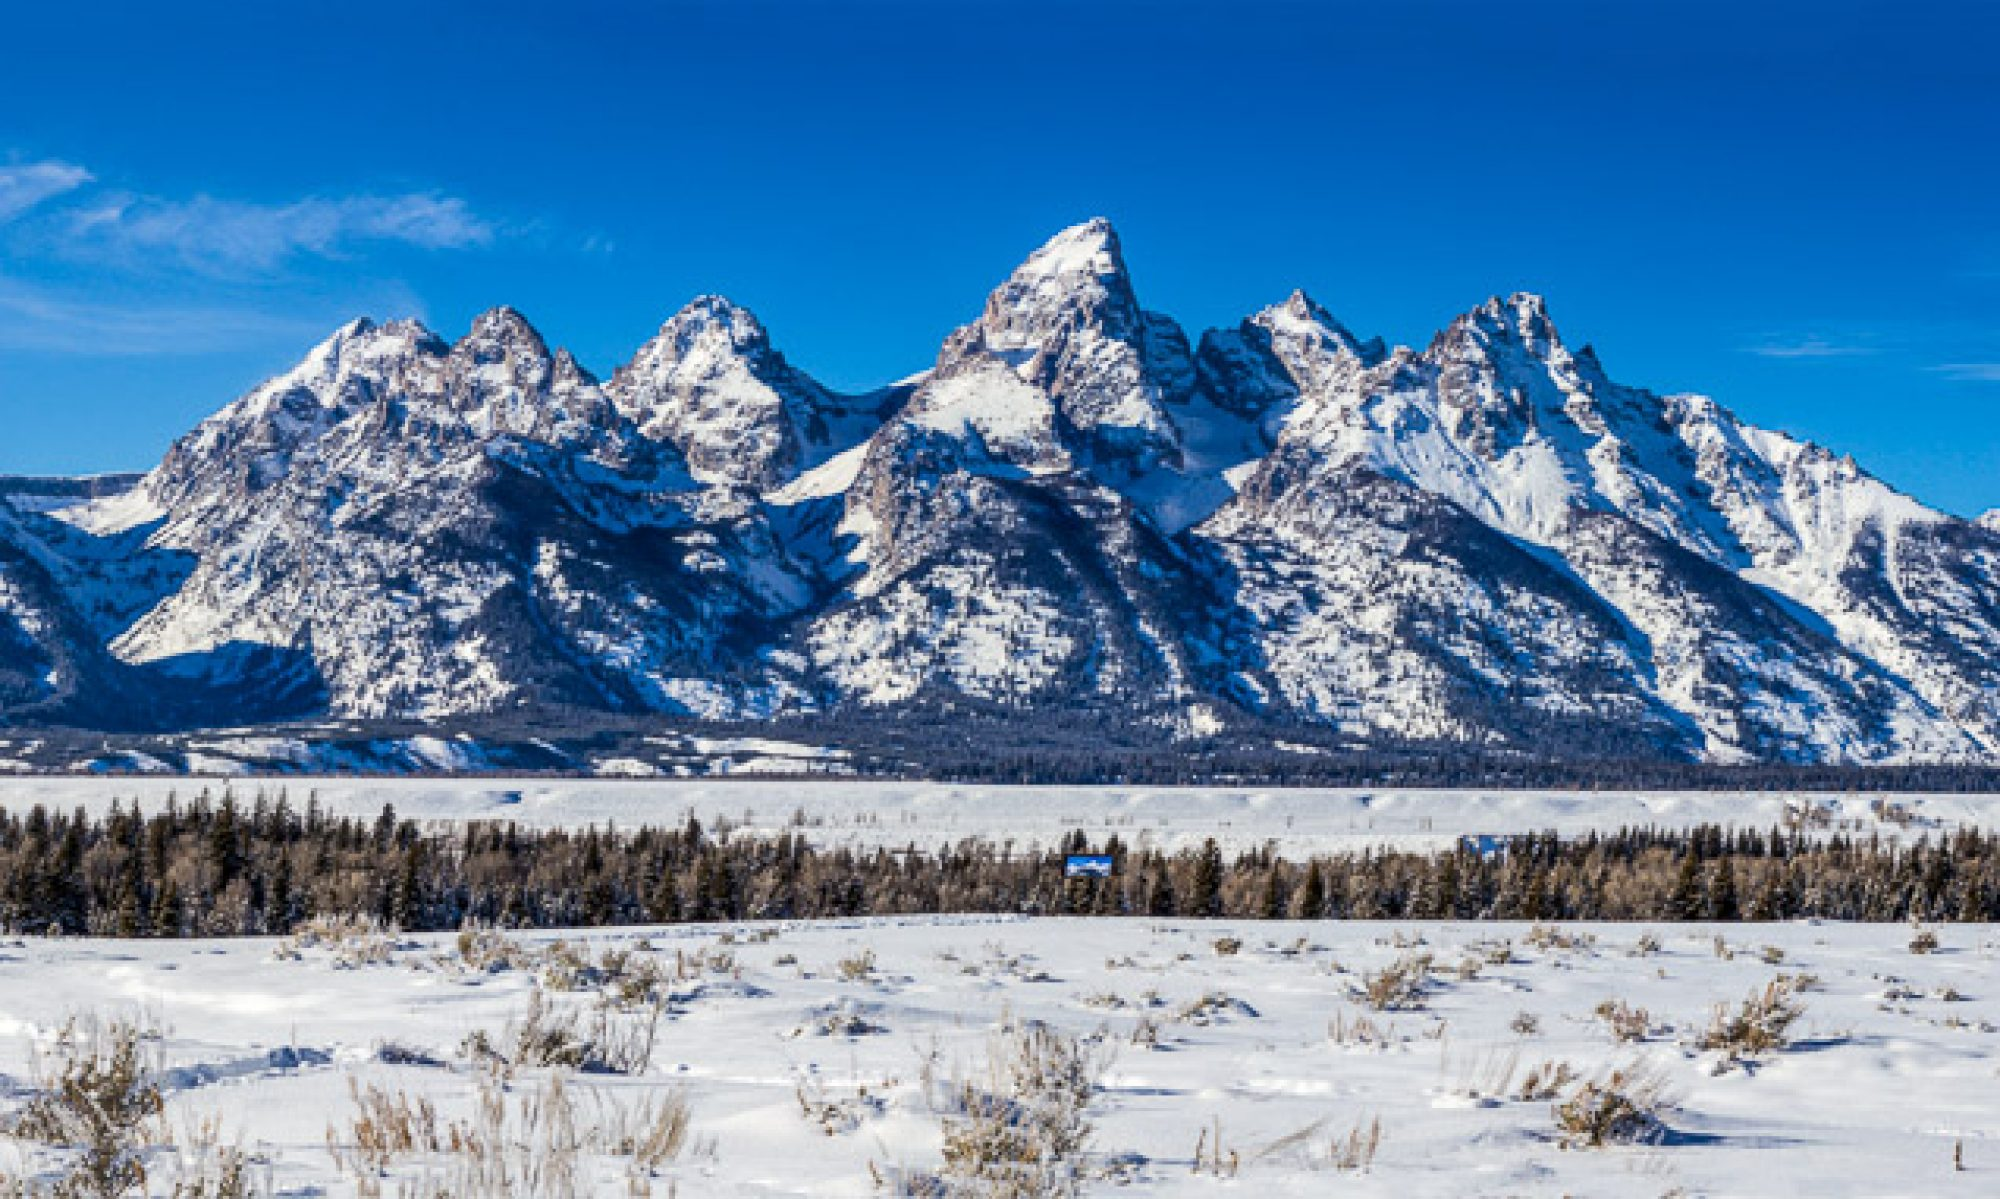 Teton Photography Group